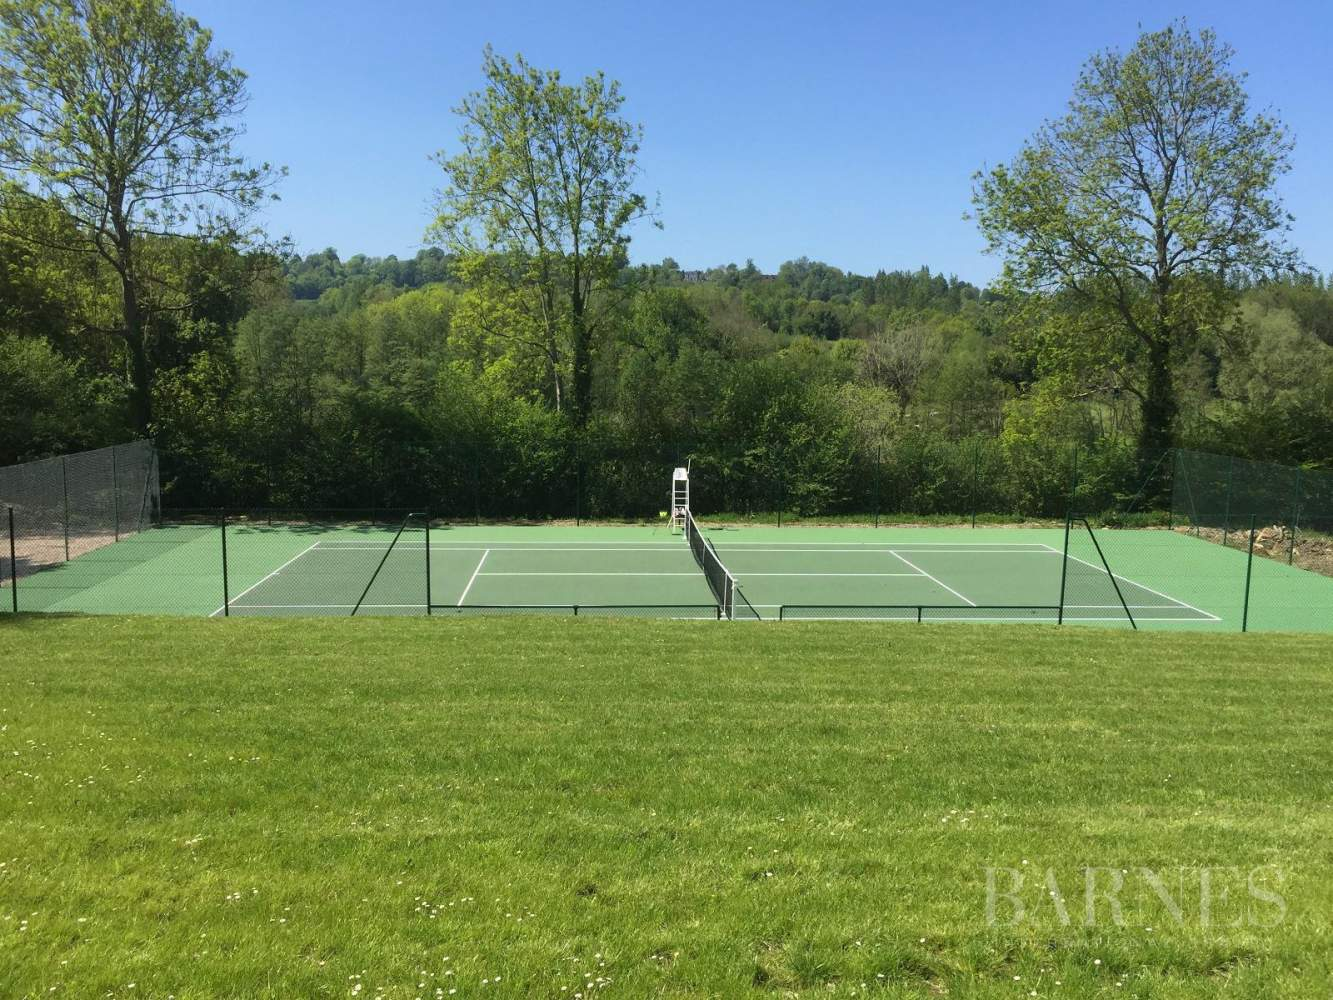 Near Deauville Property with character - 5 bedrooms - heated pool, tennis court, 2.47-acre landscaped park picture 2